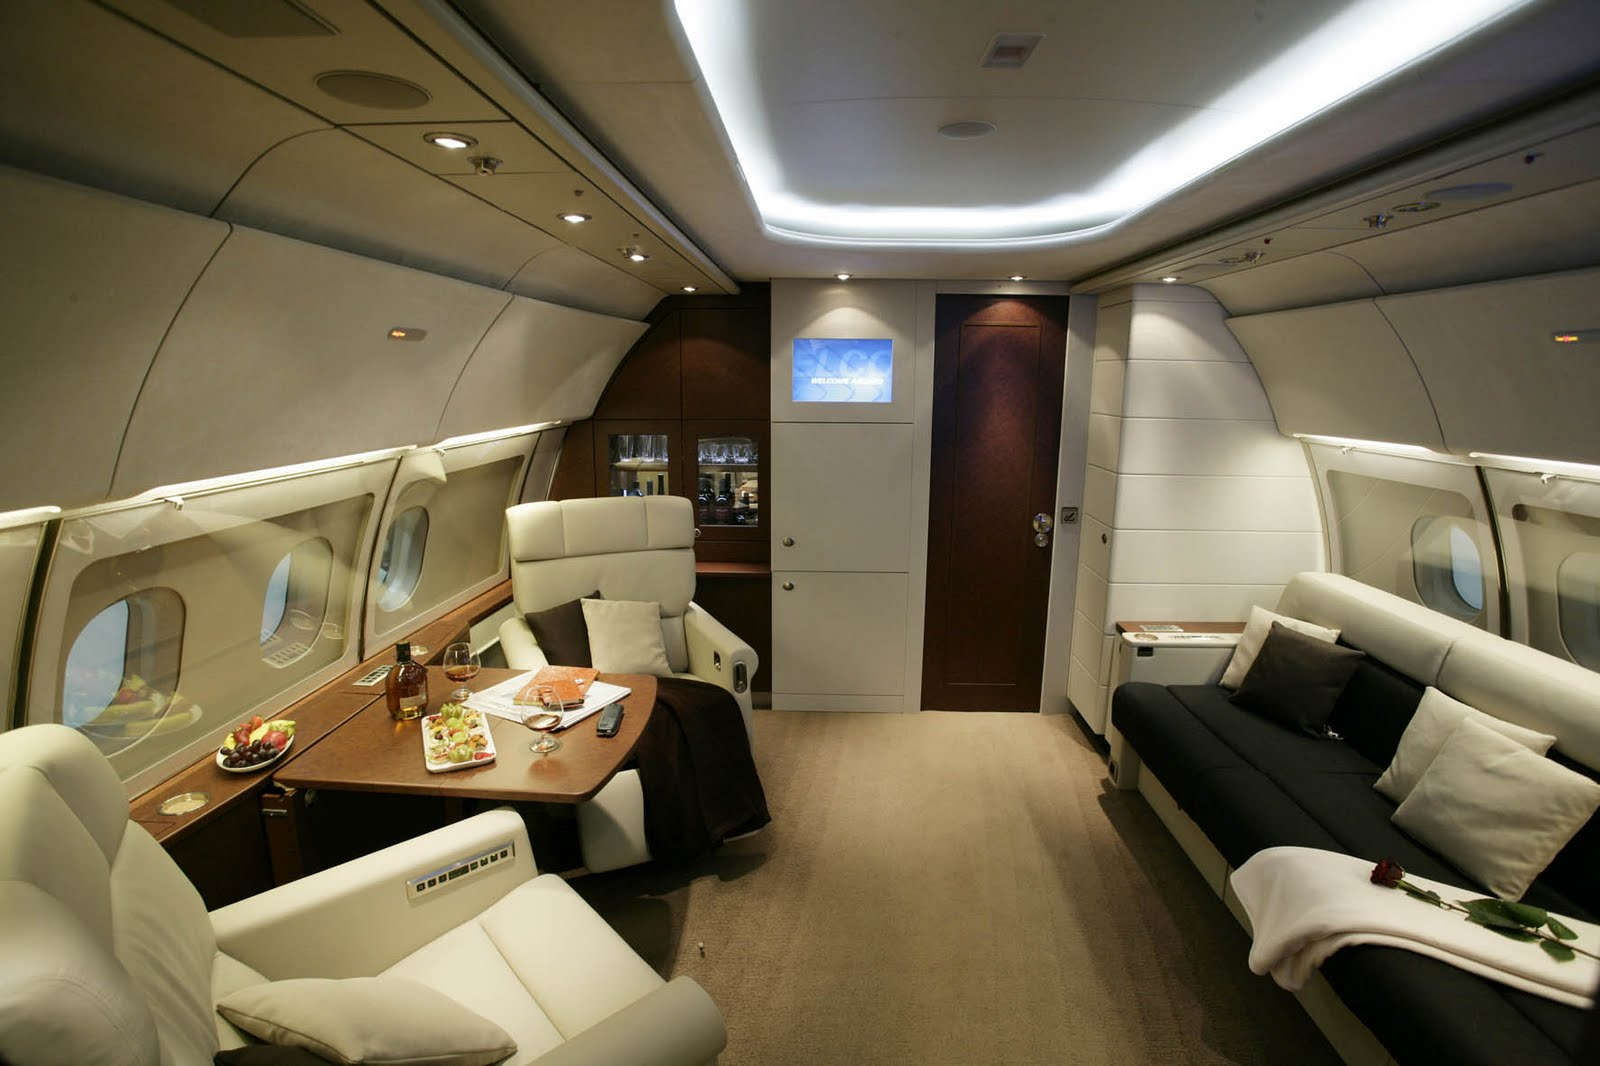 jet airlines test bombardier global 7000 interior. Black Bedroom Furniture Sets. Home Design Ideas